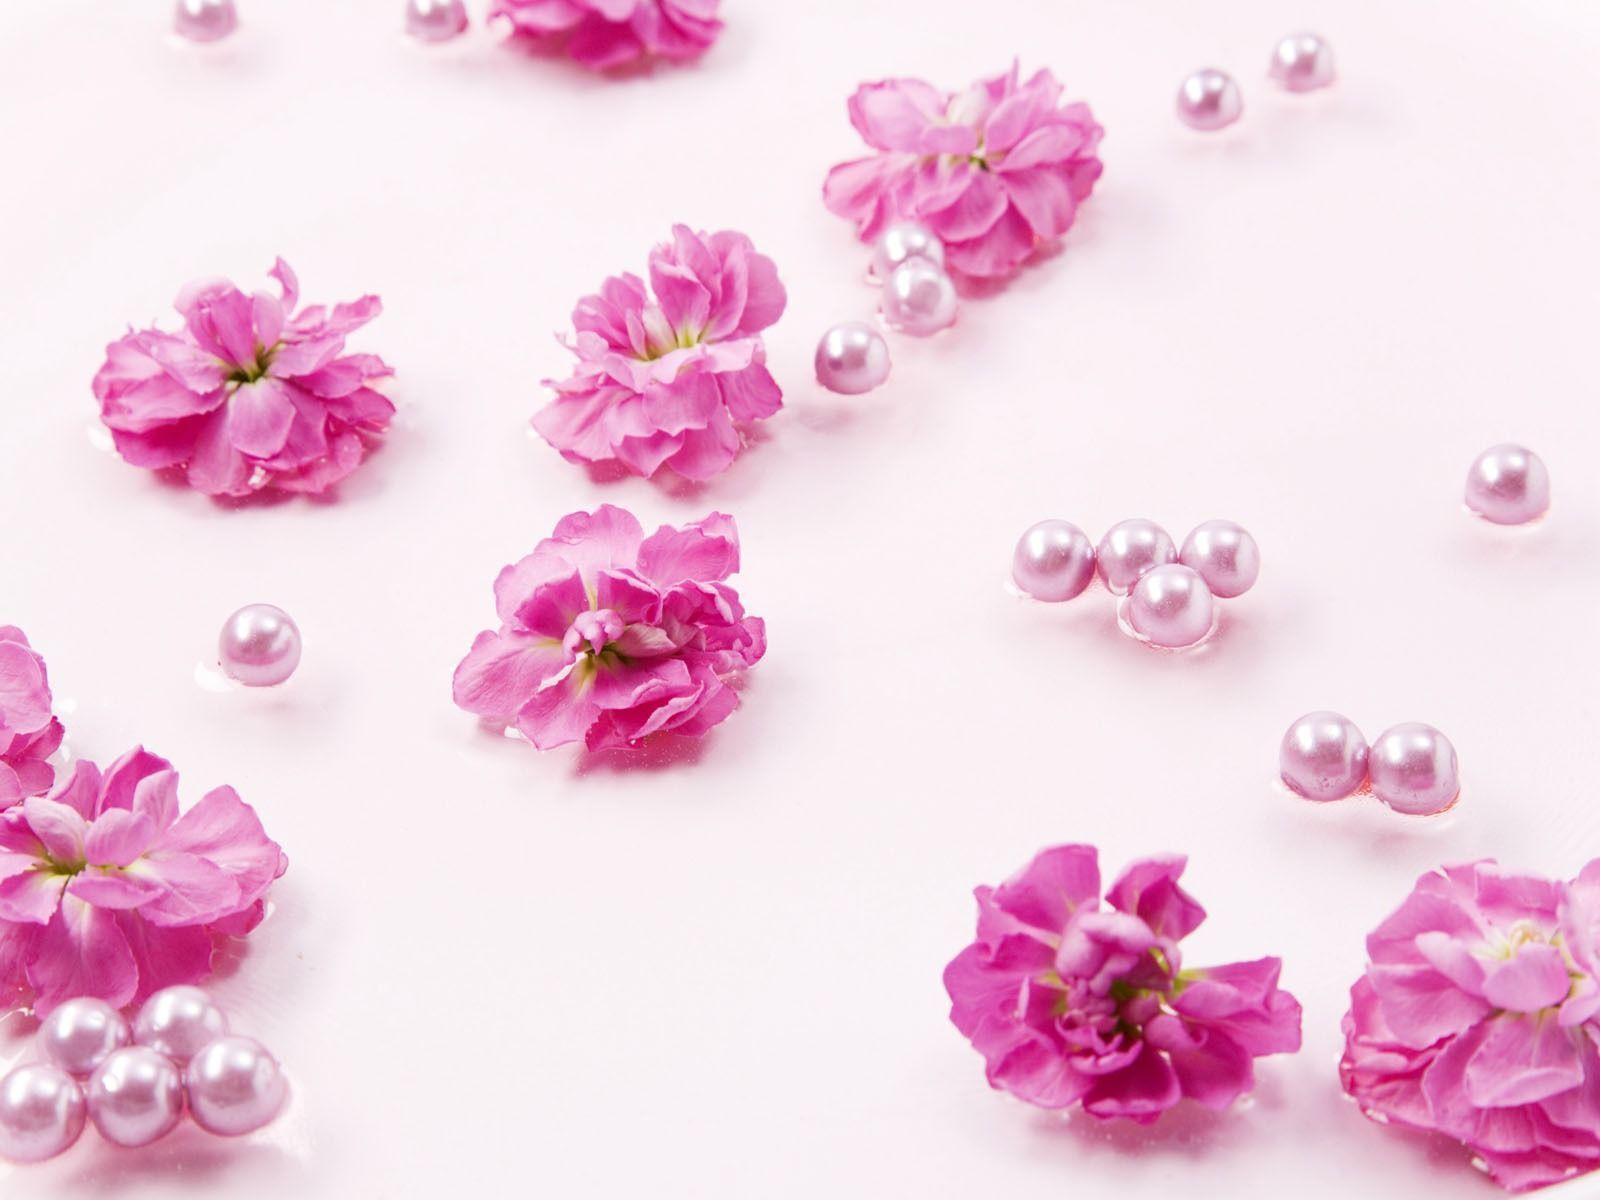 Wedding Flower Decorations Wallpaper: Pictures on background ...